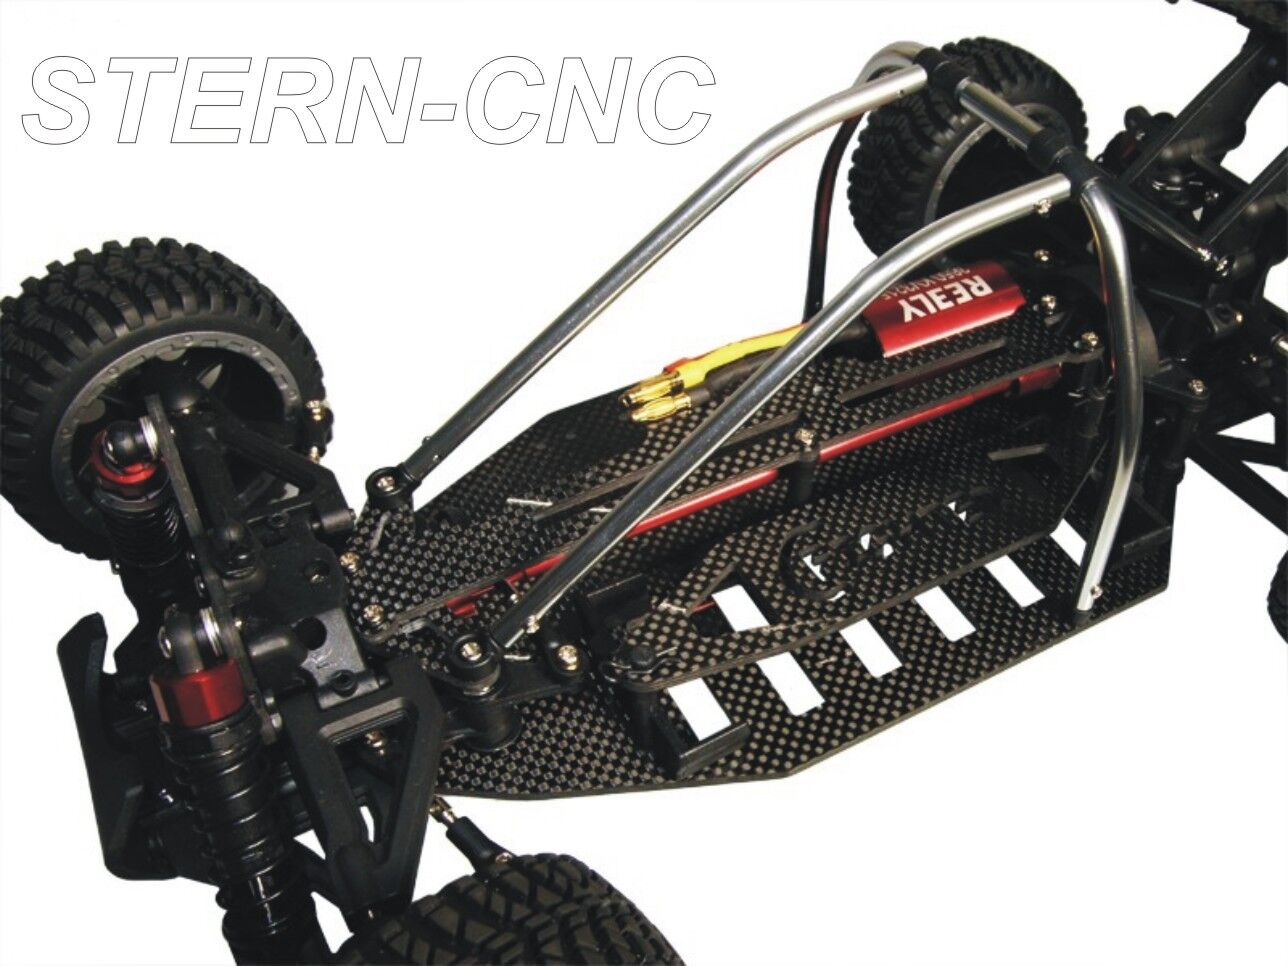 REELY Carbon Fighter 1 RANGER TITAN senza spazzole 1:10 TUNING HD Parti set